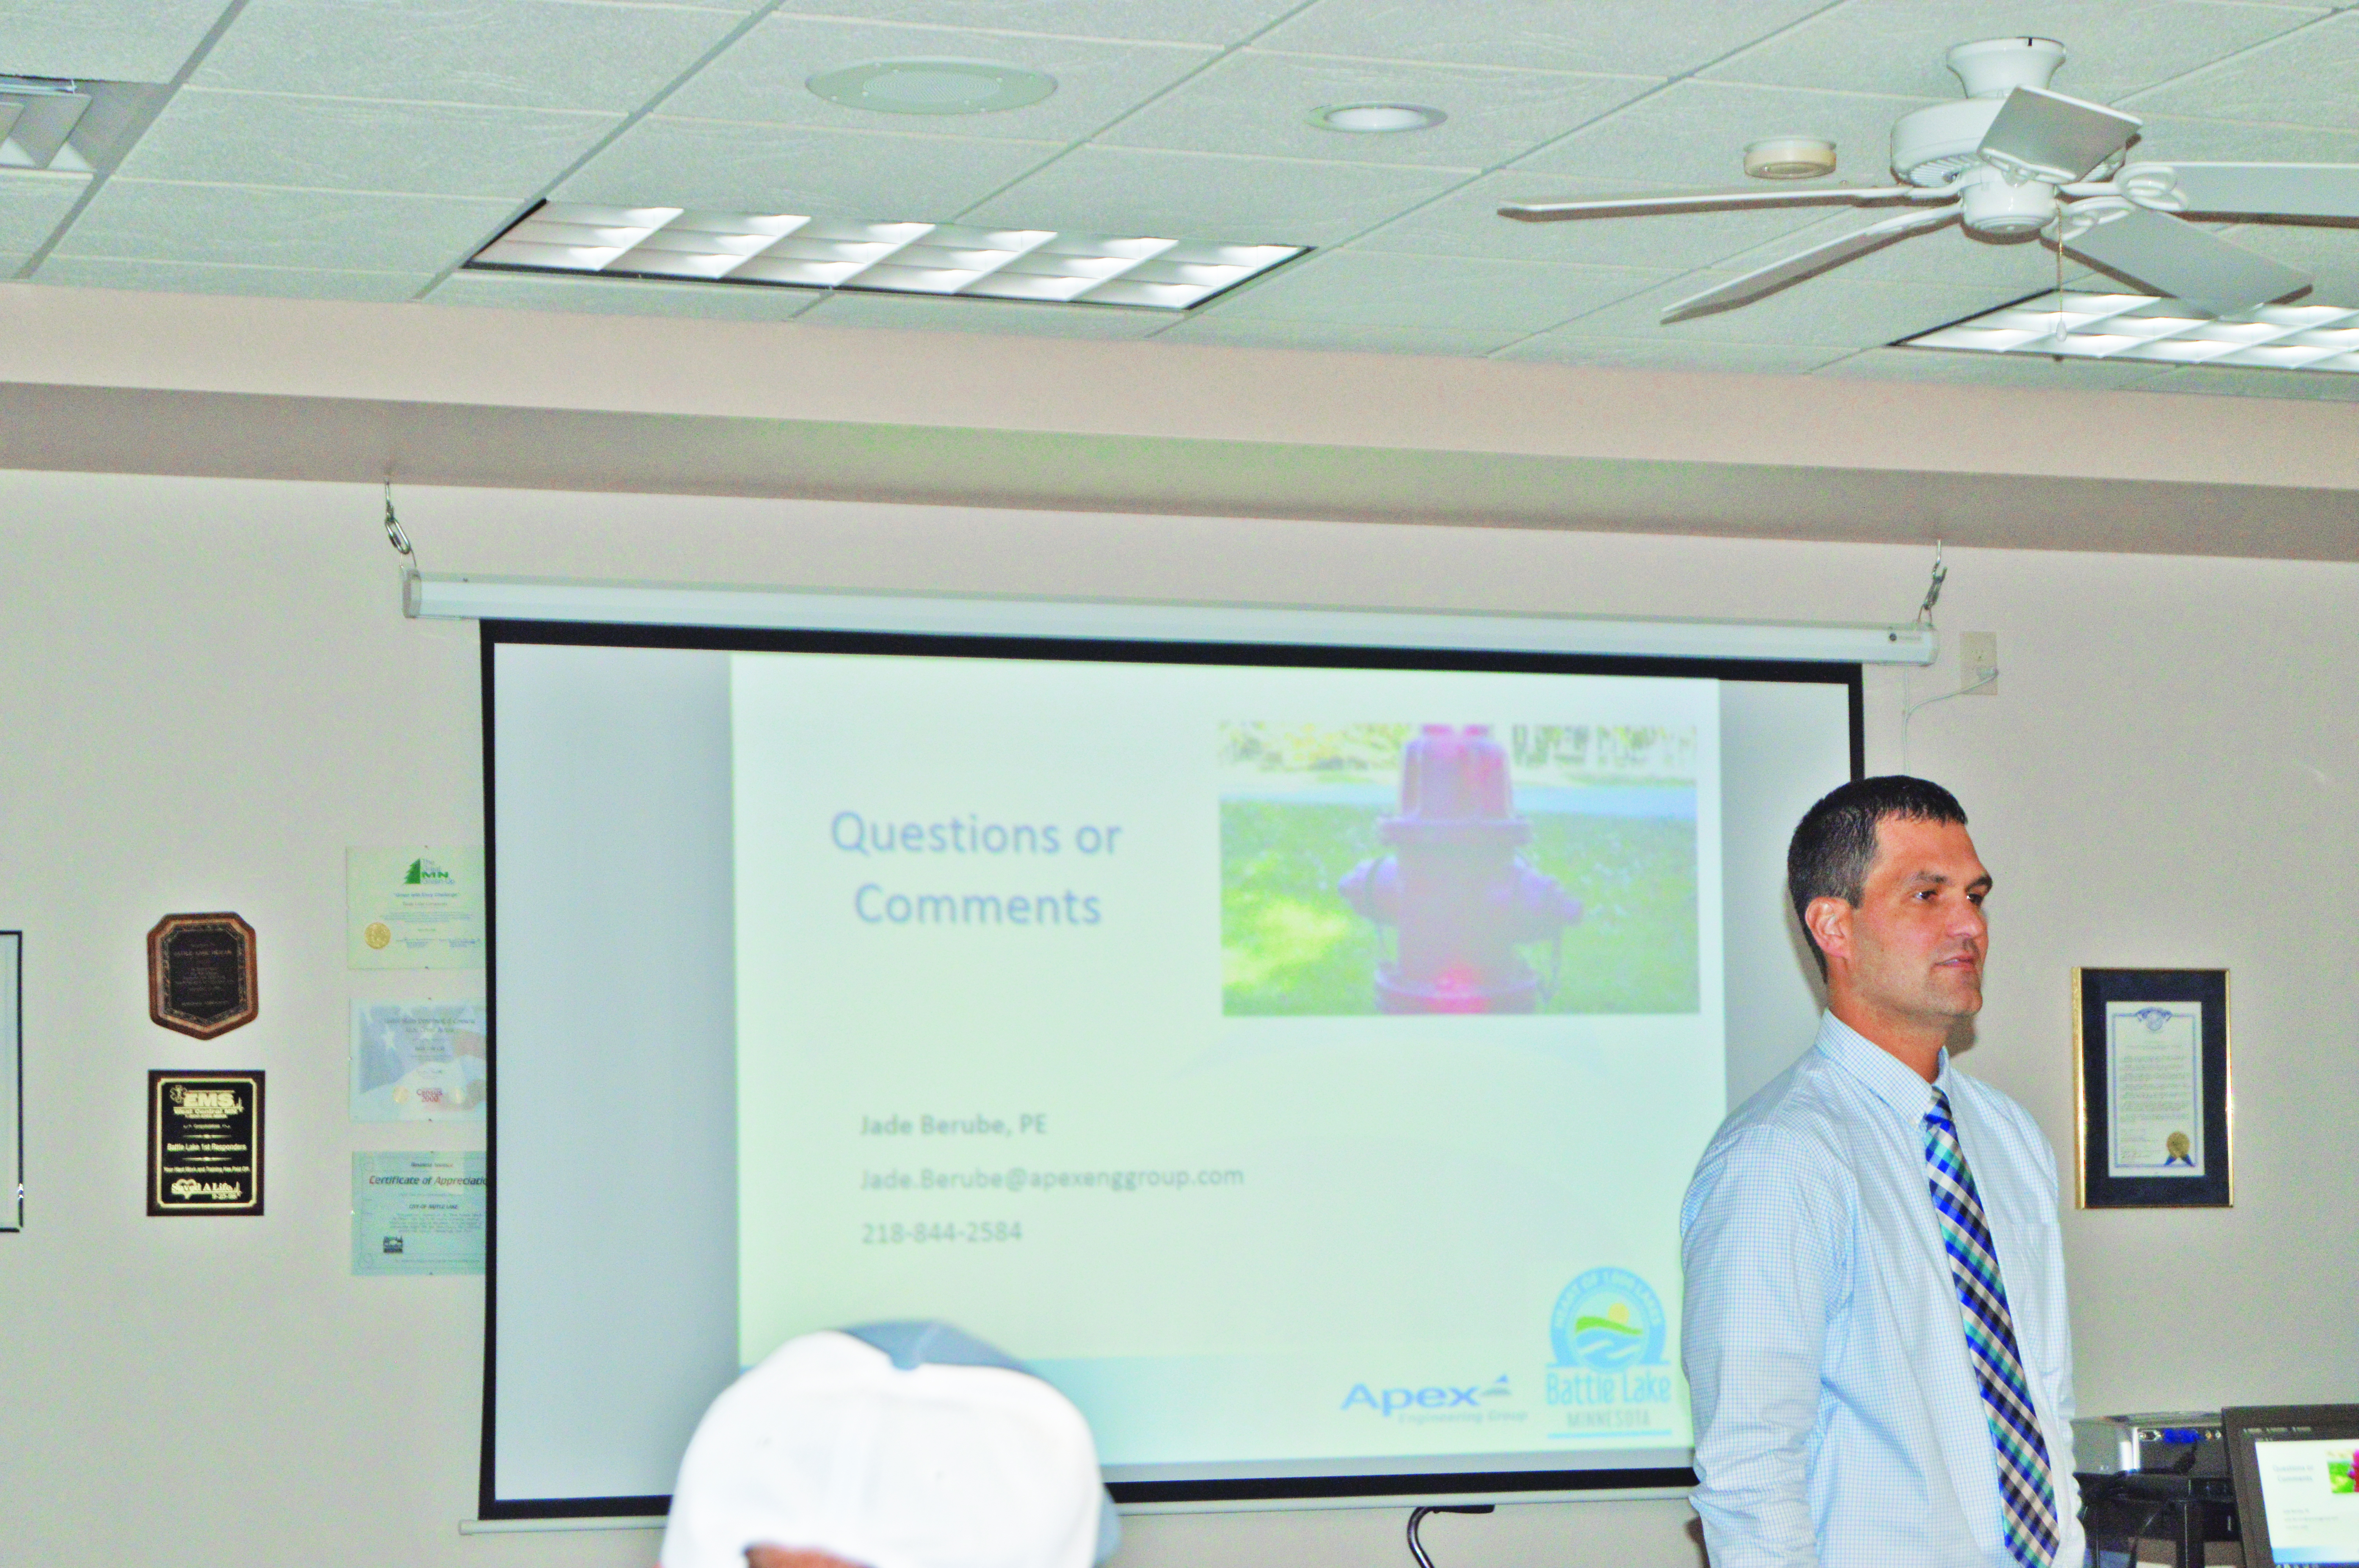 Feedback Received On Proposed Projects